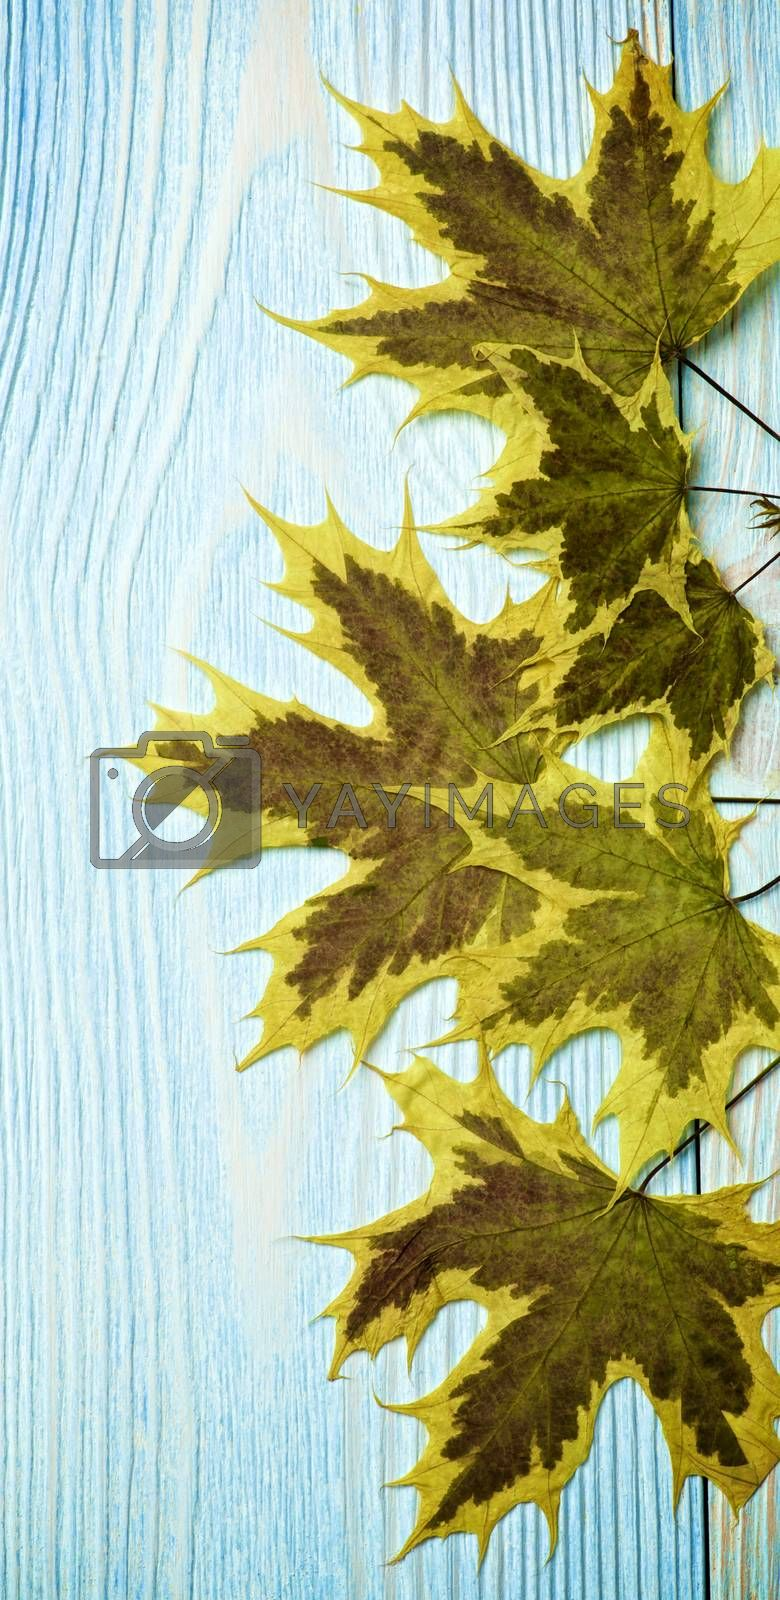 Border of Yellow Green Brittle and Dry Maple Leafs closeup on Blue Wooden background